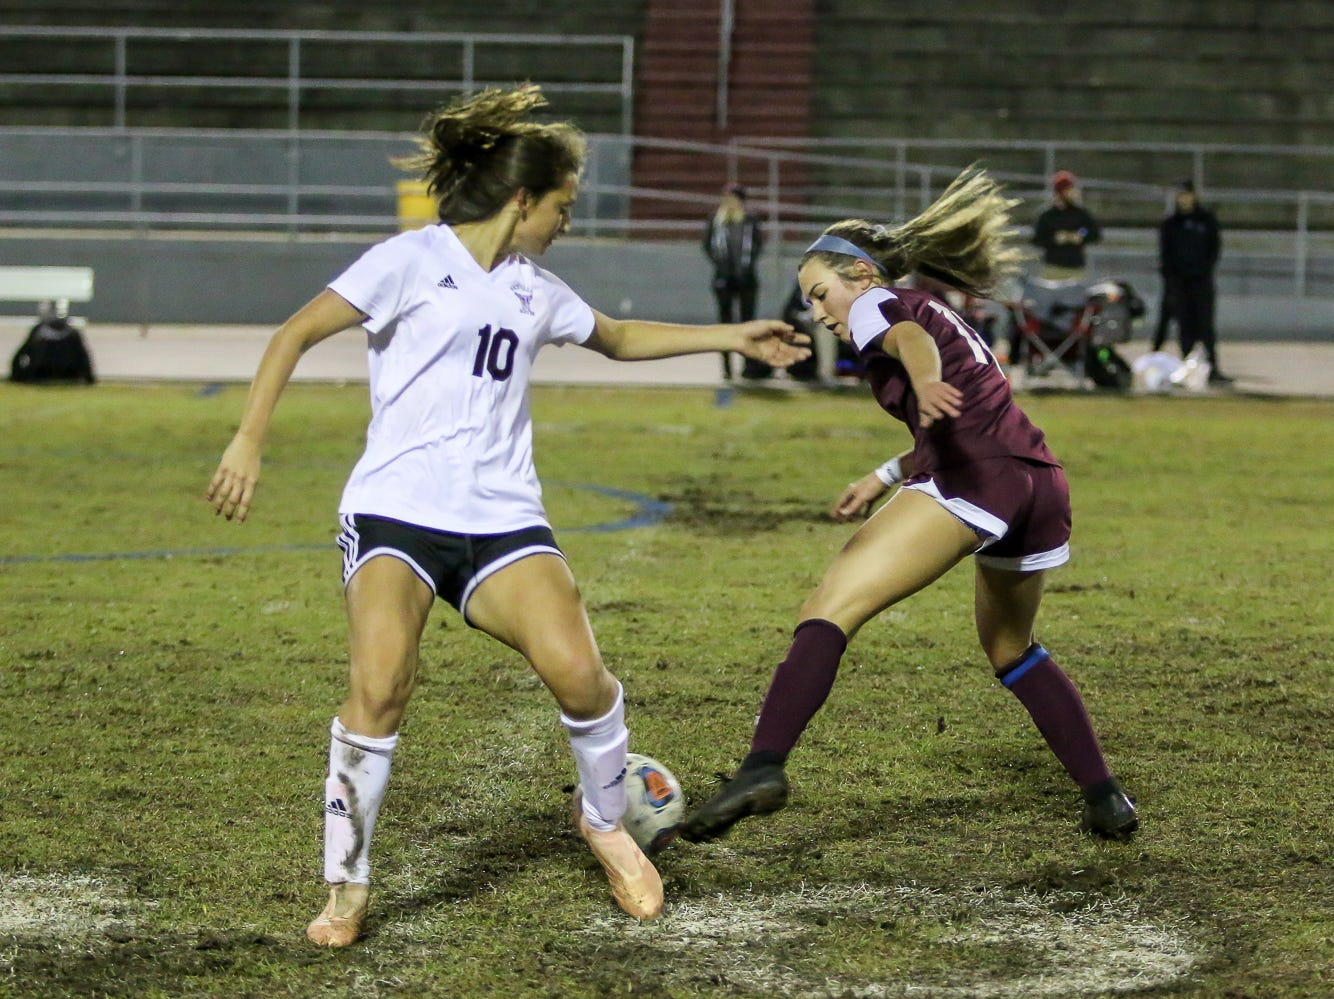 Navarre's Skylar Woods (18) makes a quick move to go behind Niceville's Ashlynn Fernandez (10) in a District 1-4A showdown of unbeaten teams at Navarre High School on Tuesday, December 4, 2018. The game ended in a 1-1 tie.